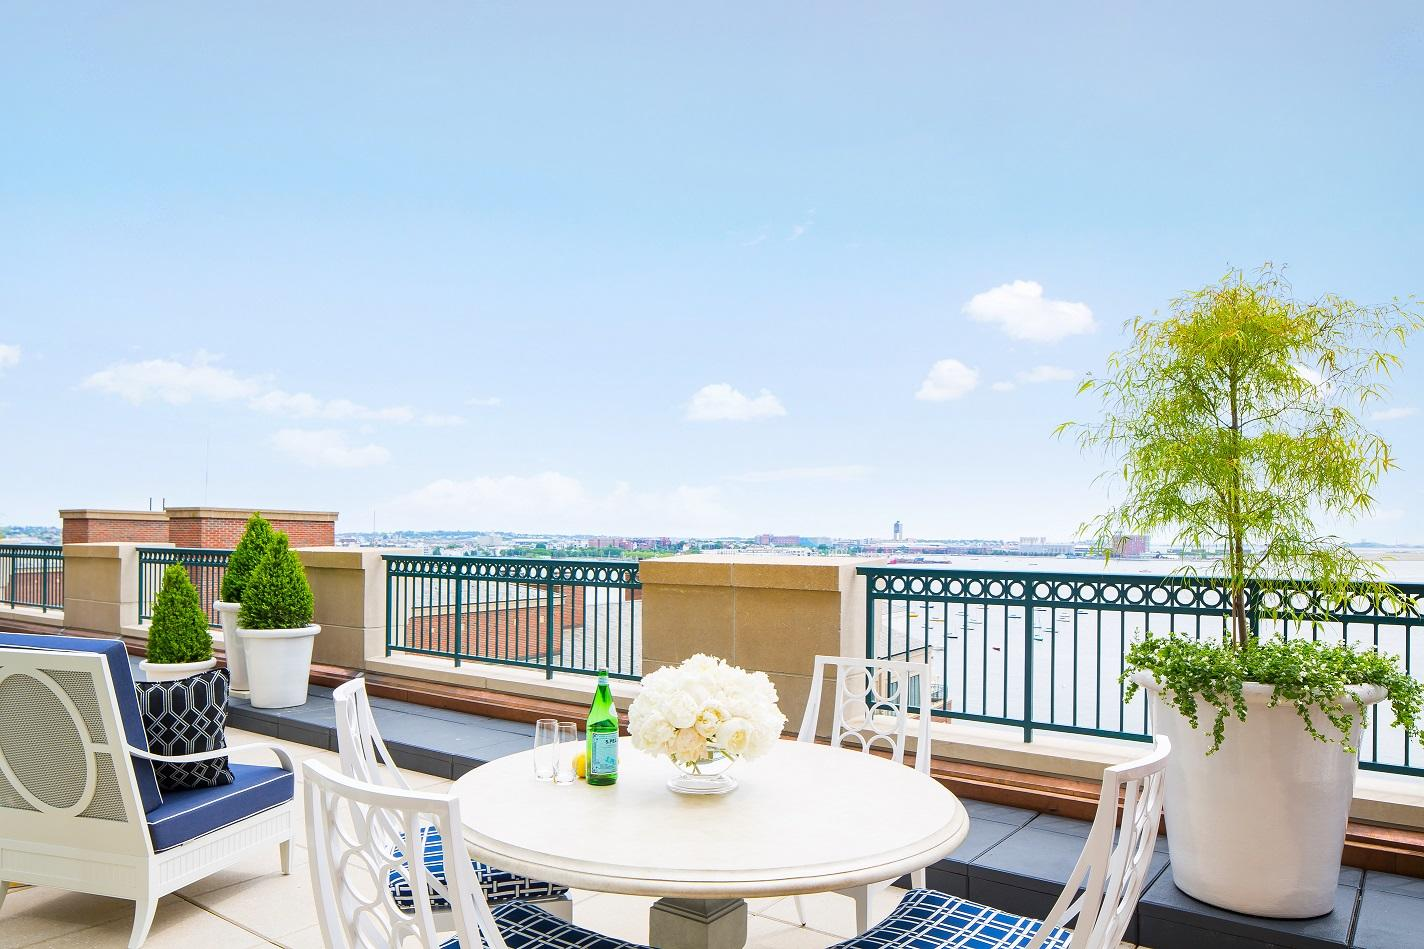 Presidential Suite terrace overlooking Boston Harbor